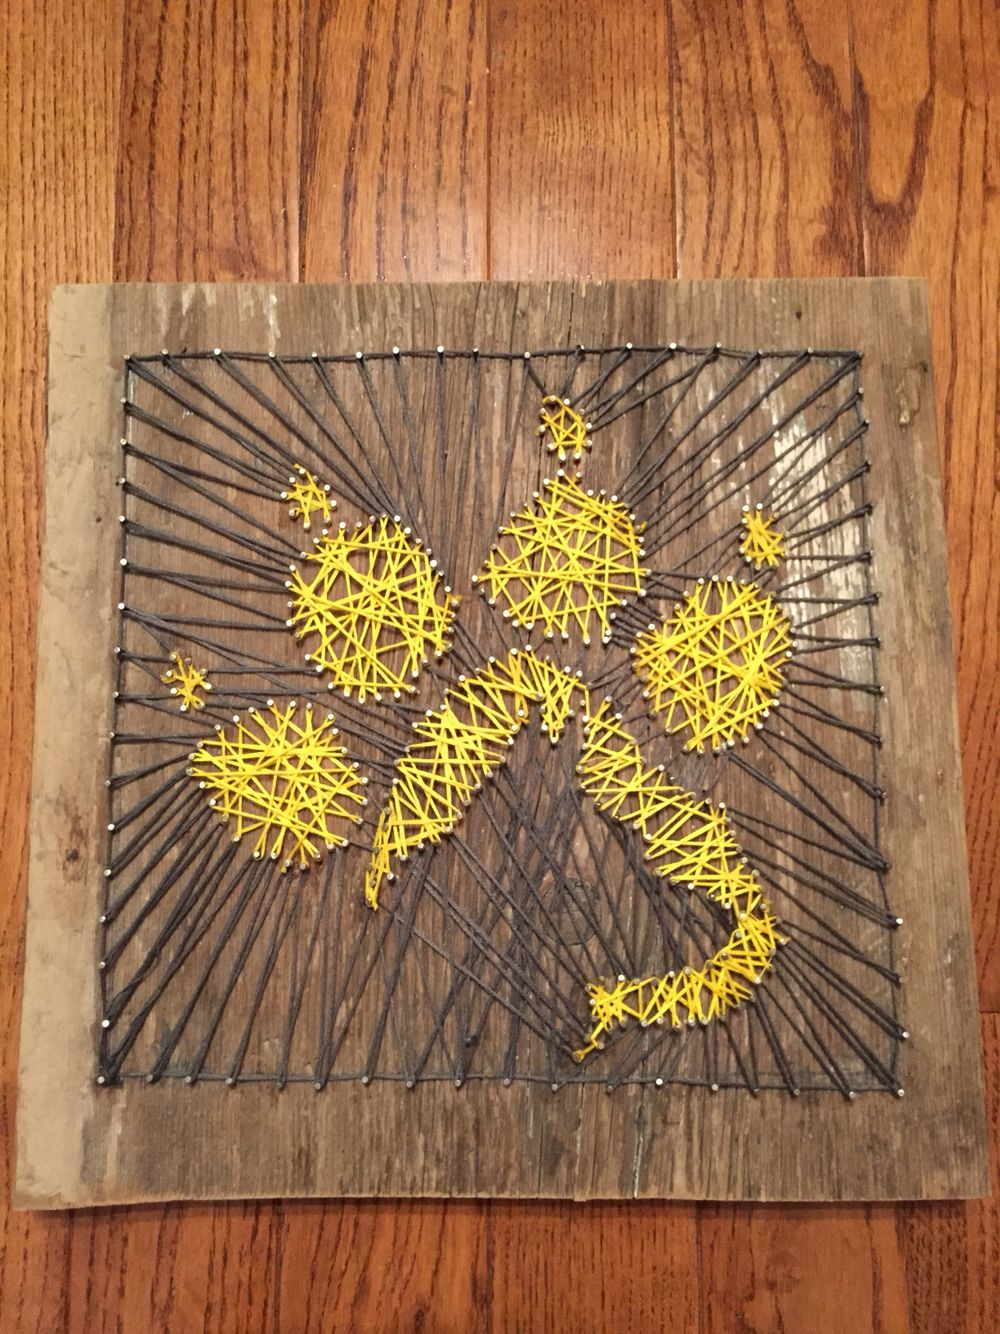 German Shepherd Paw Print String Art | string art ideas | Pinterest ...